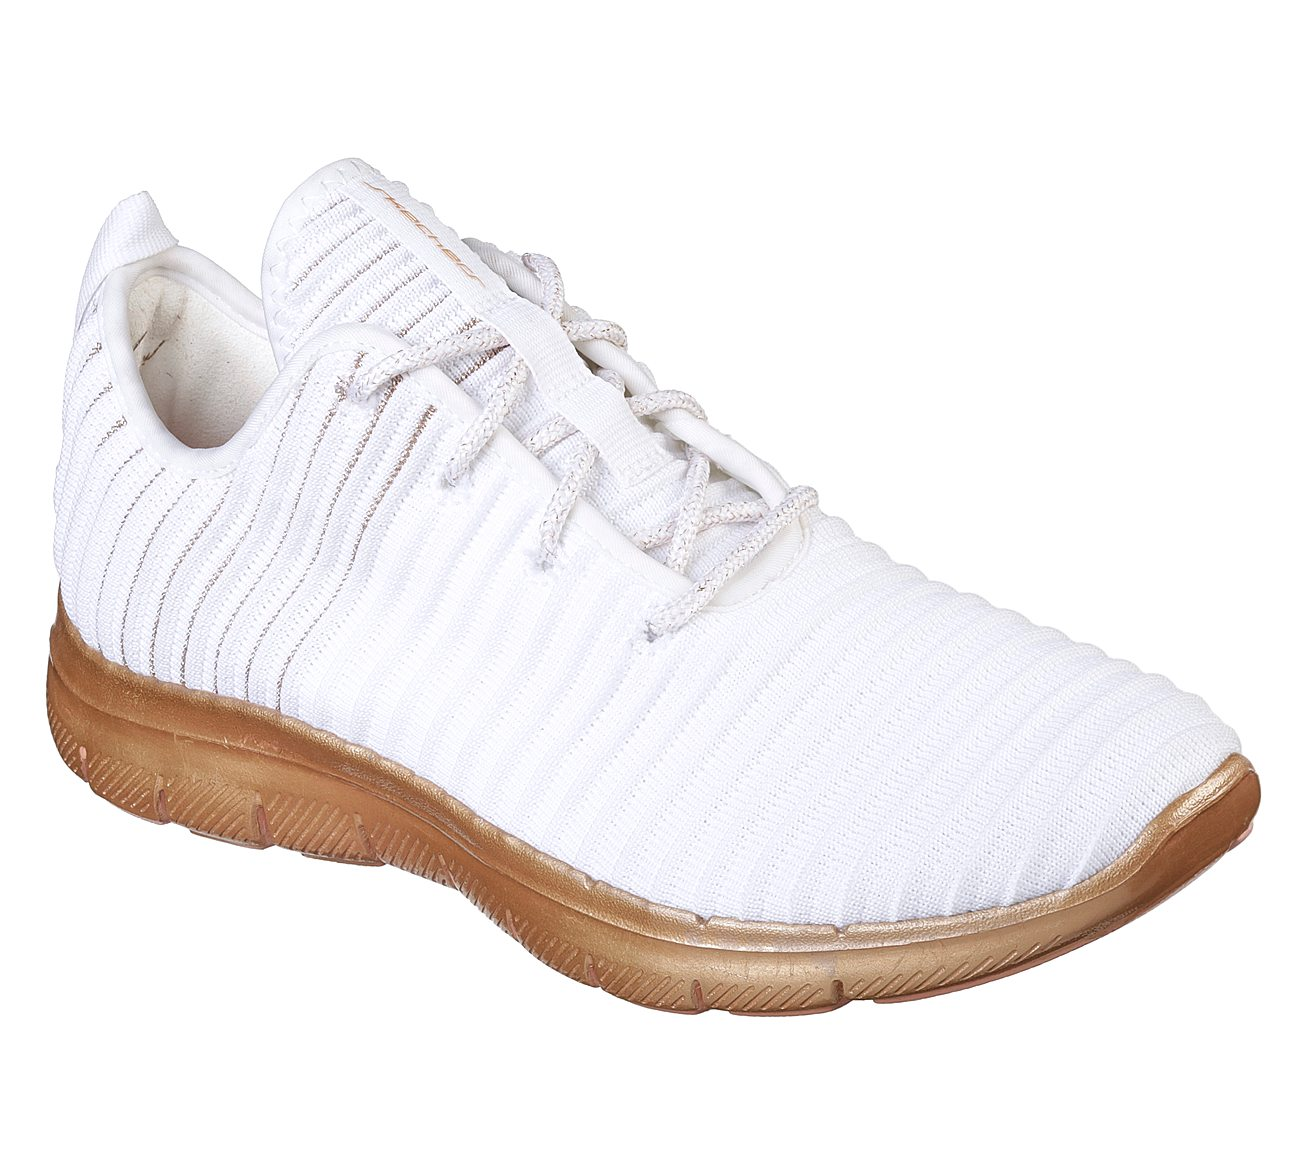 Buy SKECHERS Flex Appeal 2.0 - Chroma